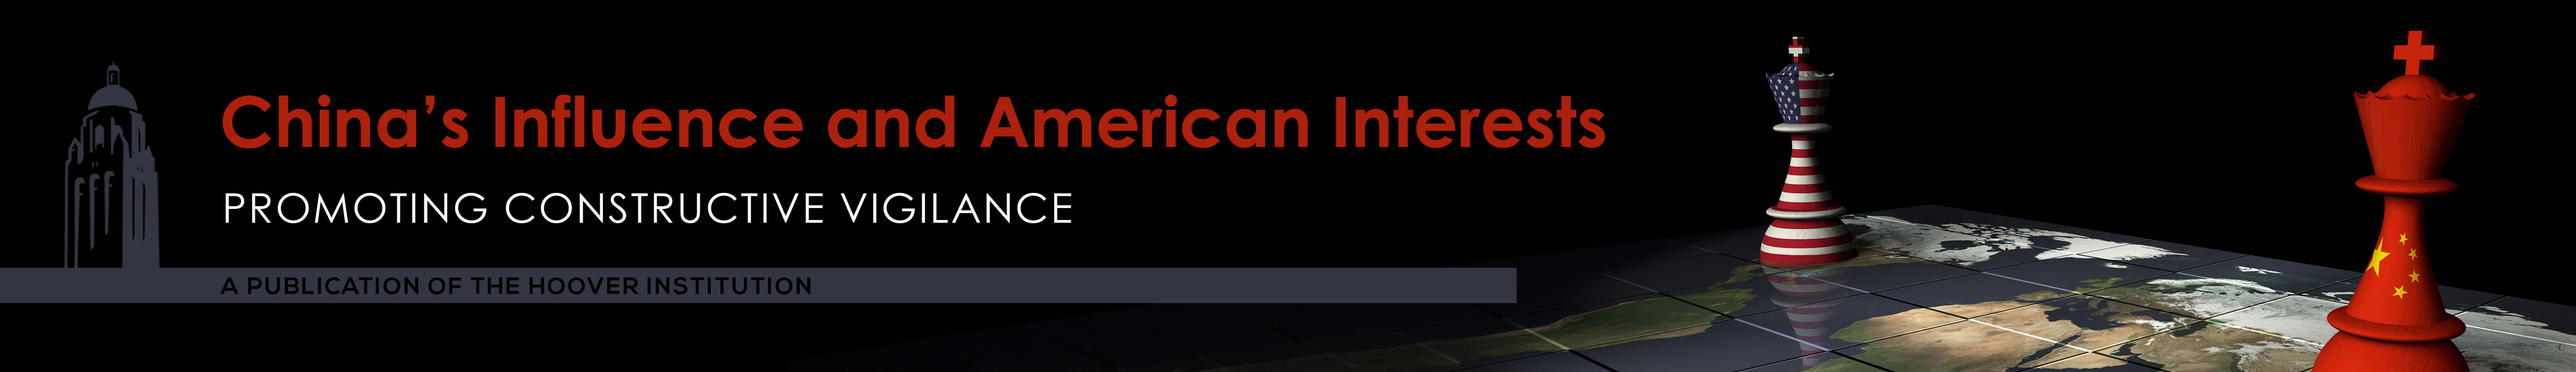 China's Influence & American Interests: Promoting